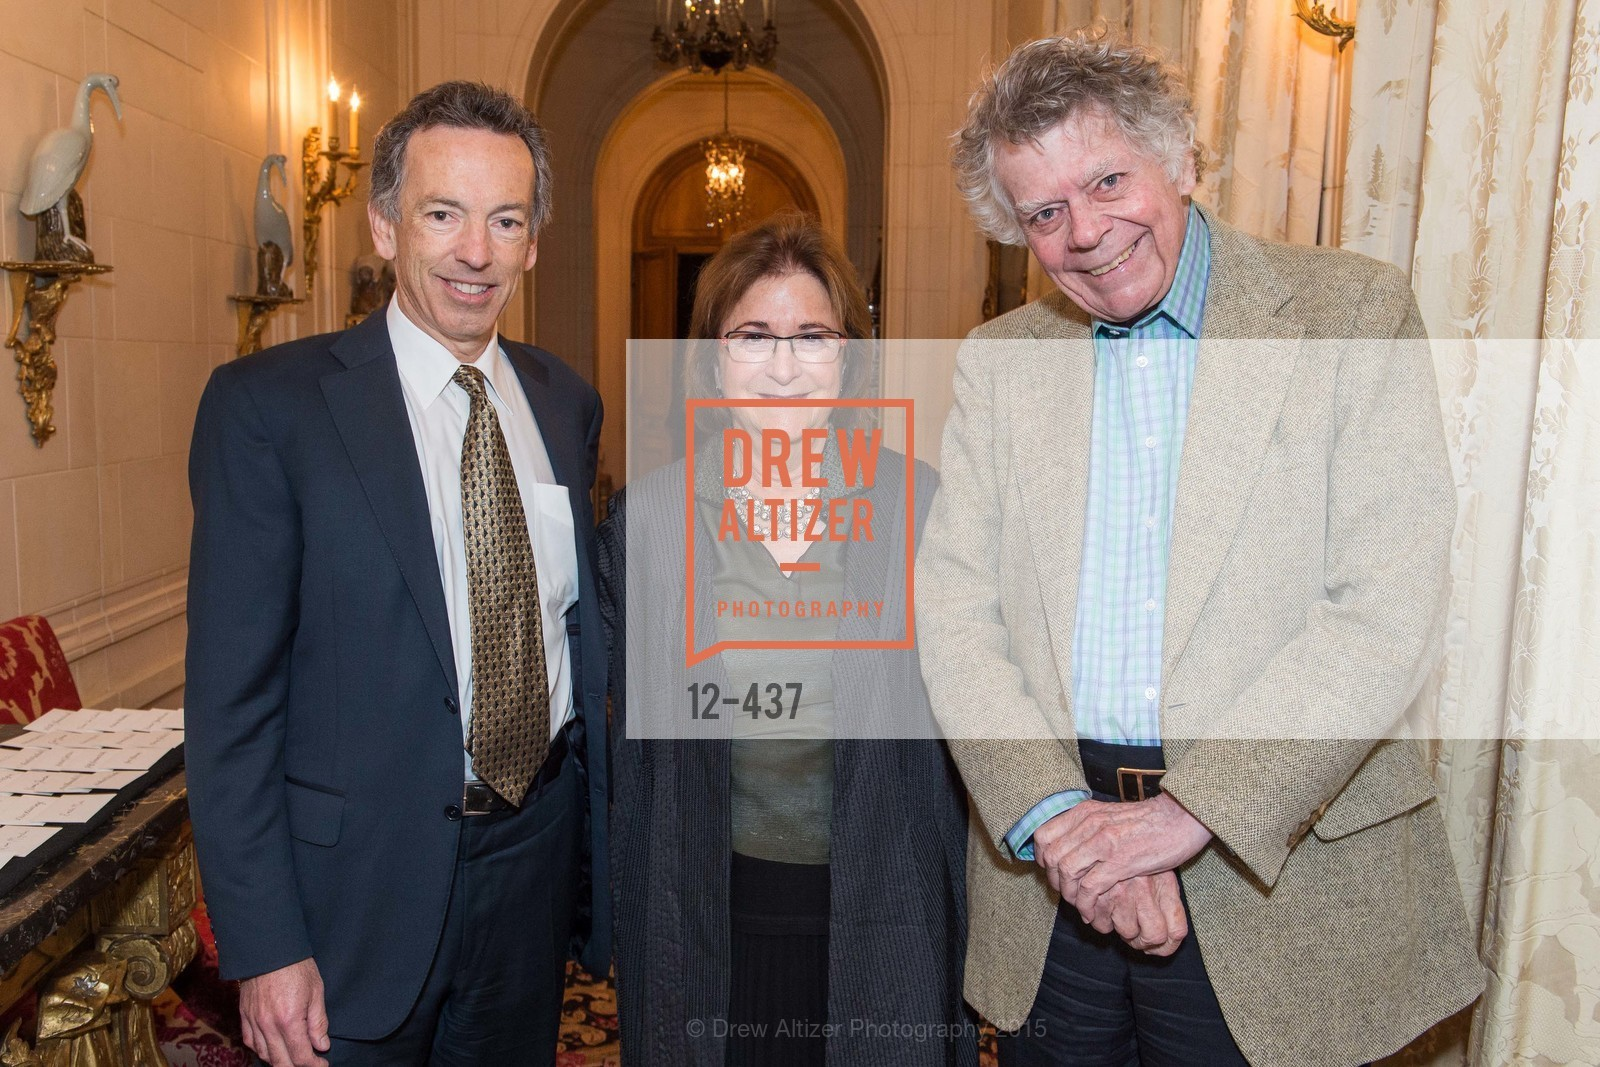 Rick Walker, Alice Corning, Gordon Getty, FDS Vintner Reception and Dinner, Private Residence, November 4th, 2015,Drew Altizer, Drew Altizer Photography, full-service agency, private events, San Francisco photographer, photographer california